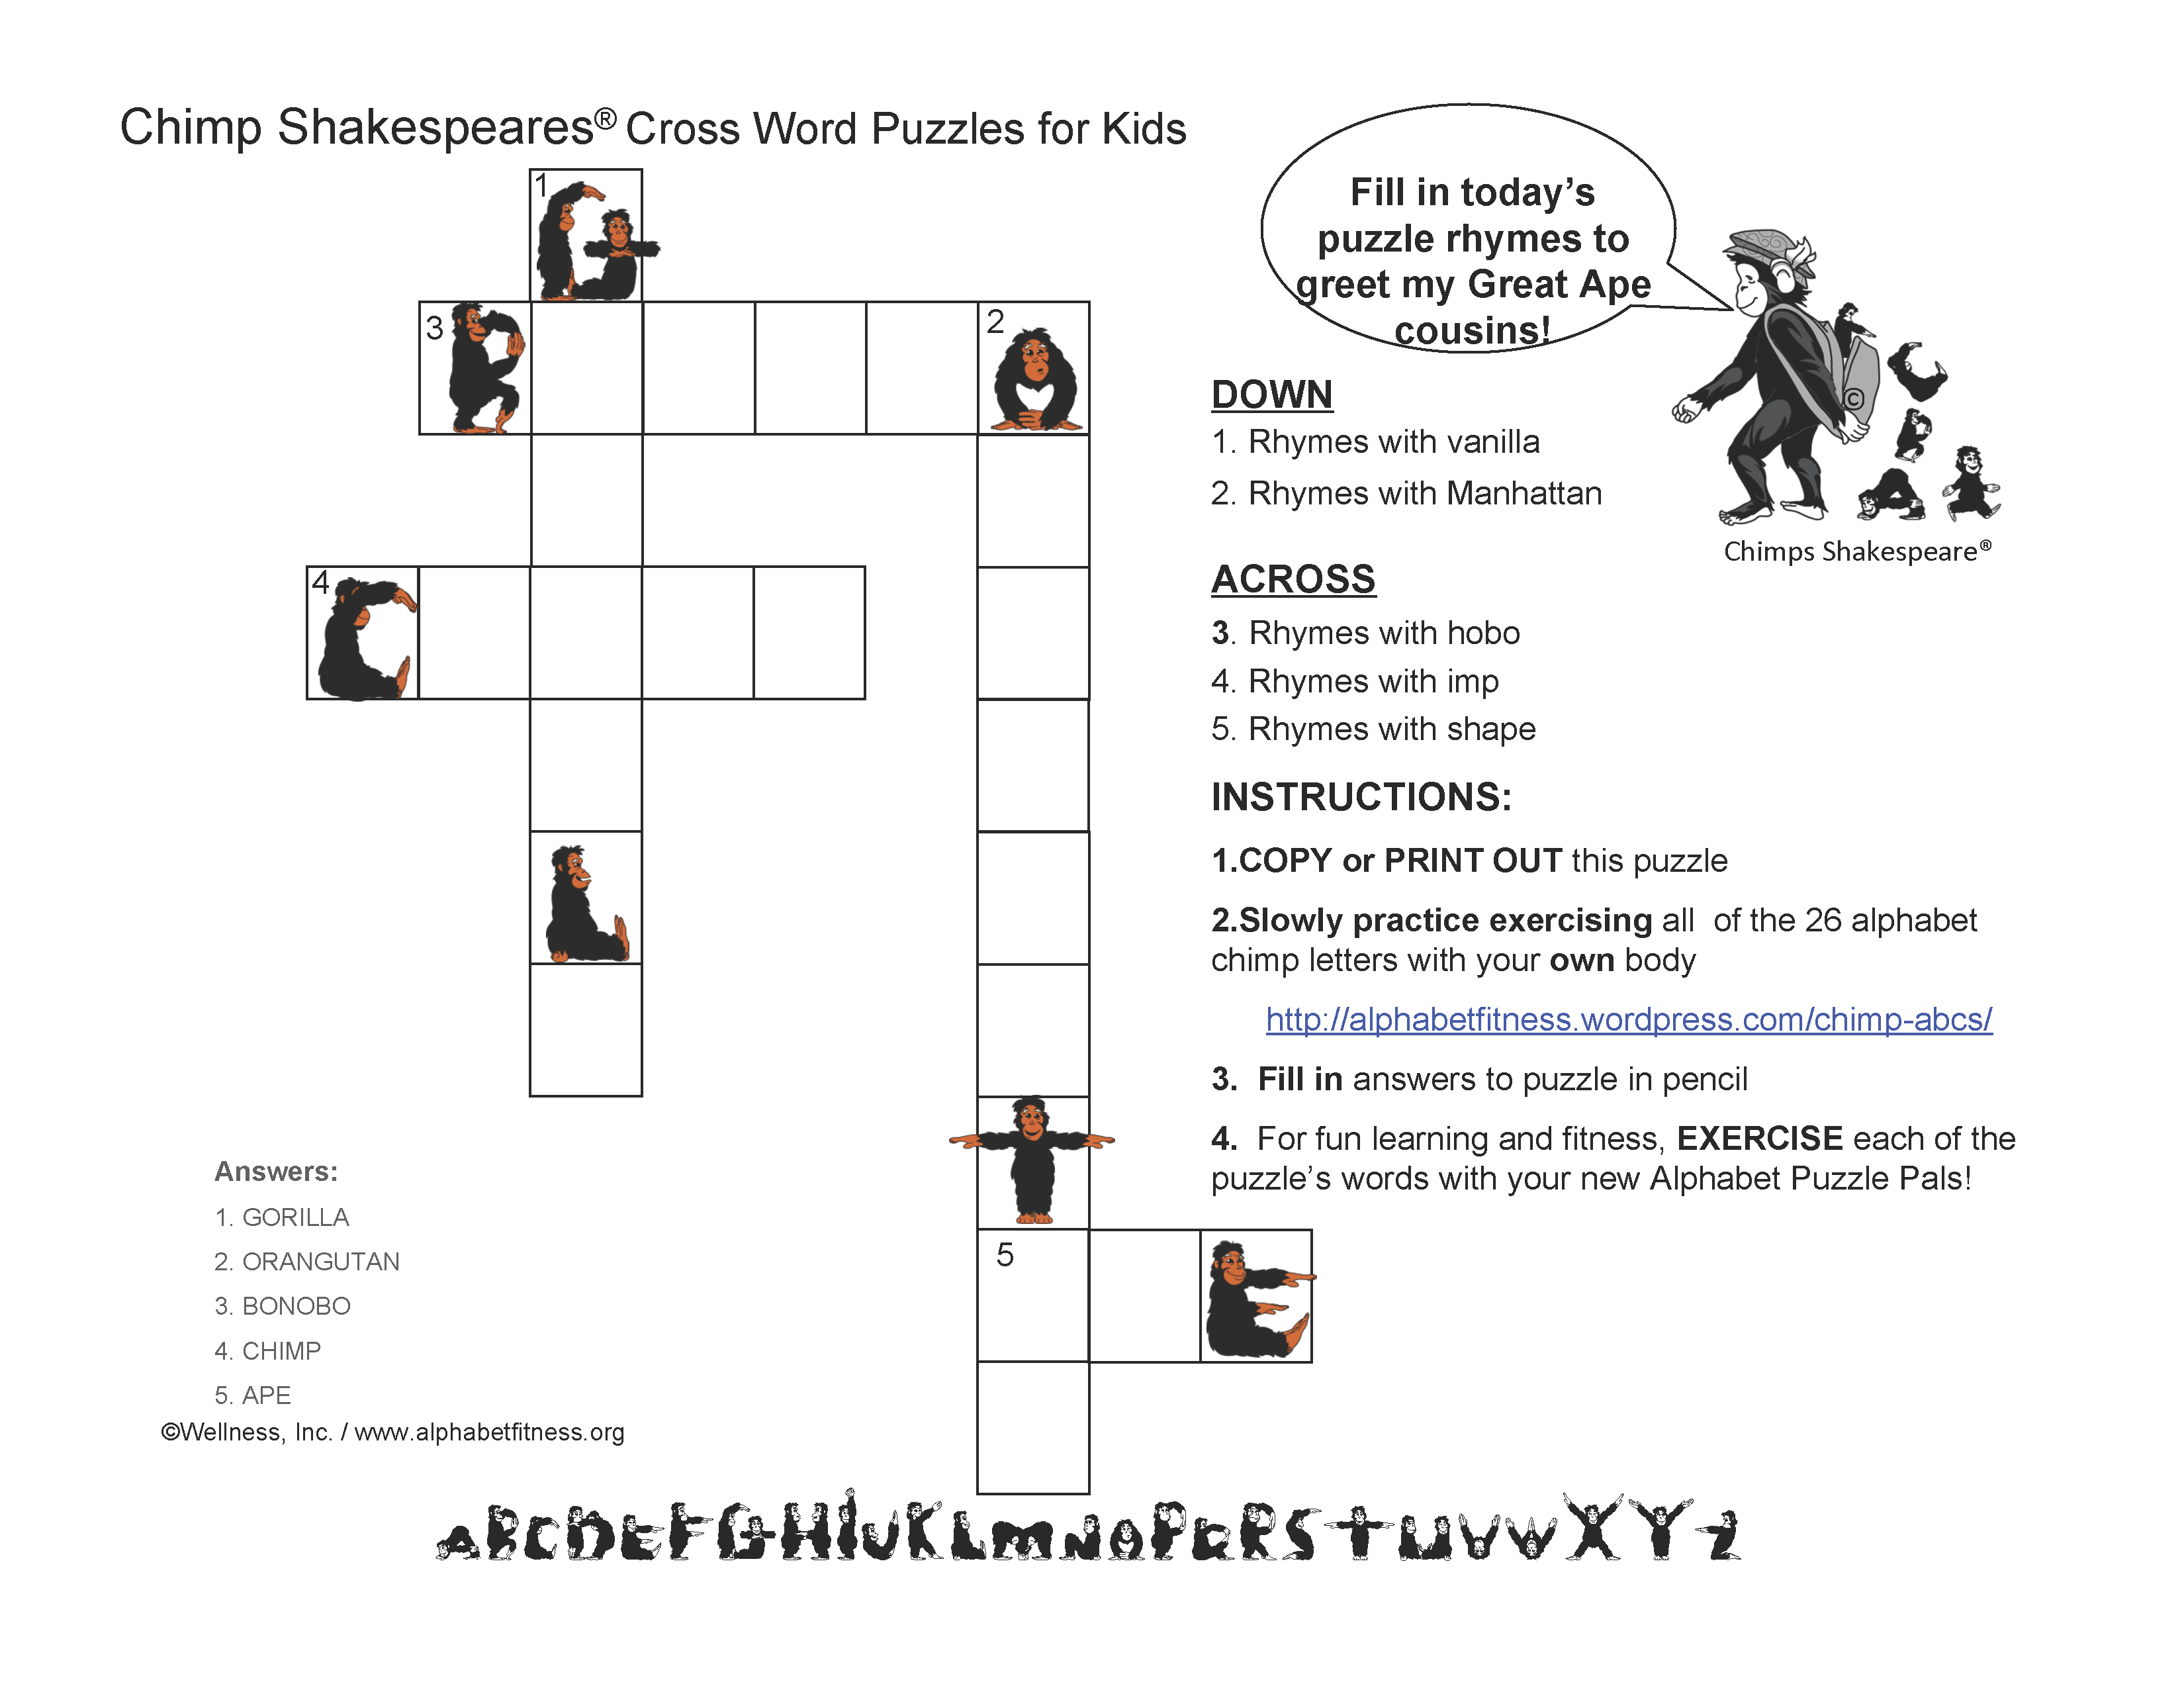 Alphabet fitness puzzles and fund raisers alphabet fitness cs great ape cousins puzzle02162015 ccuart Gallery